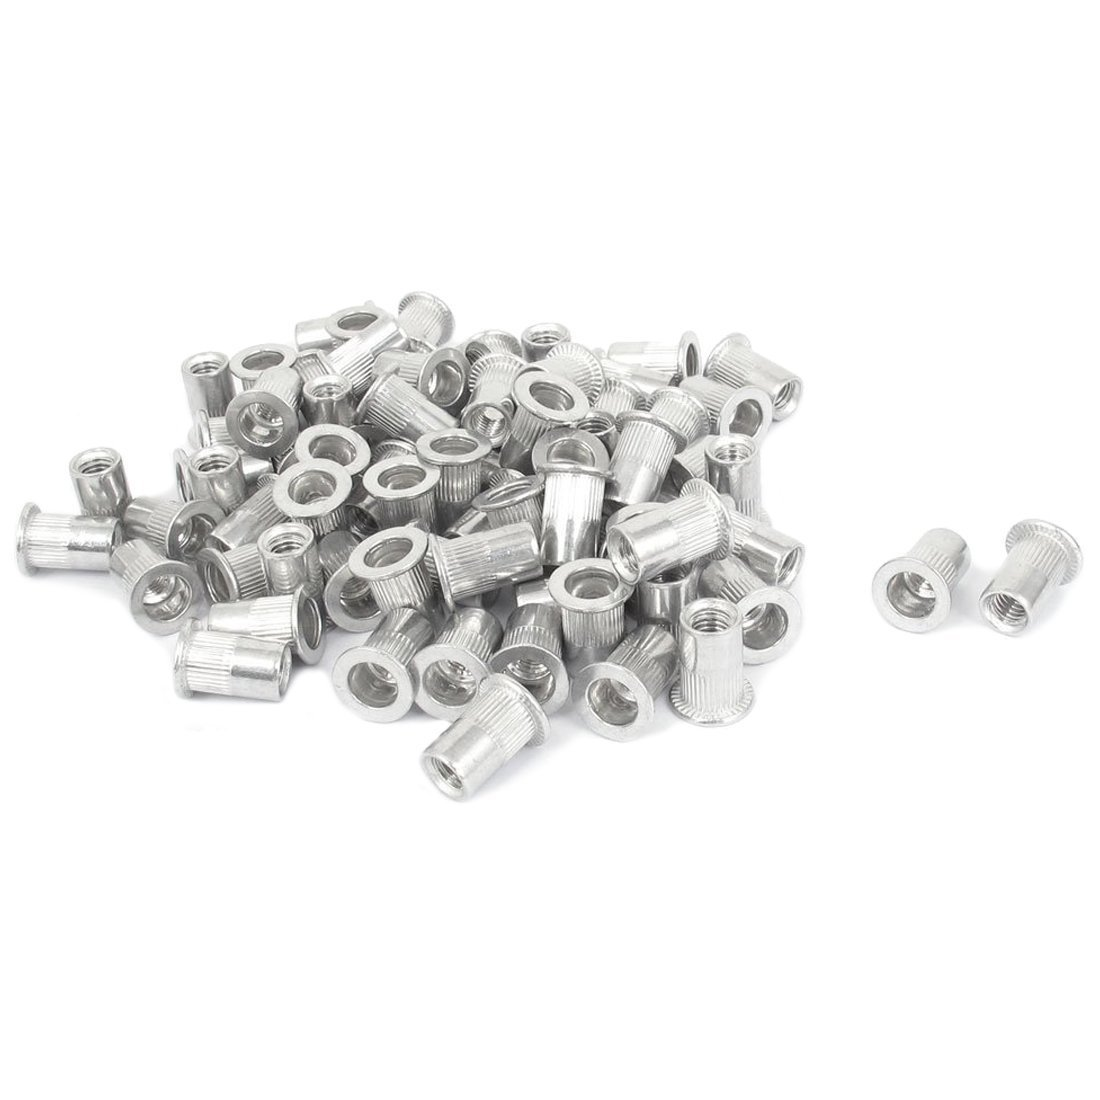 TOOGOO(R) M6x15mm Aluminum Flat Head Ribbed Body Rivet Nuts Insert Nutserts 100pcs